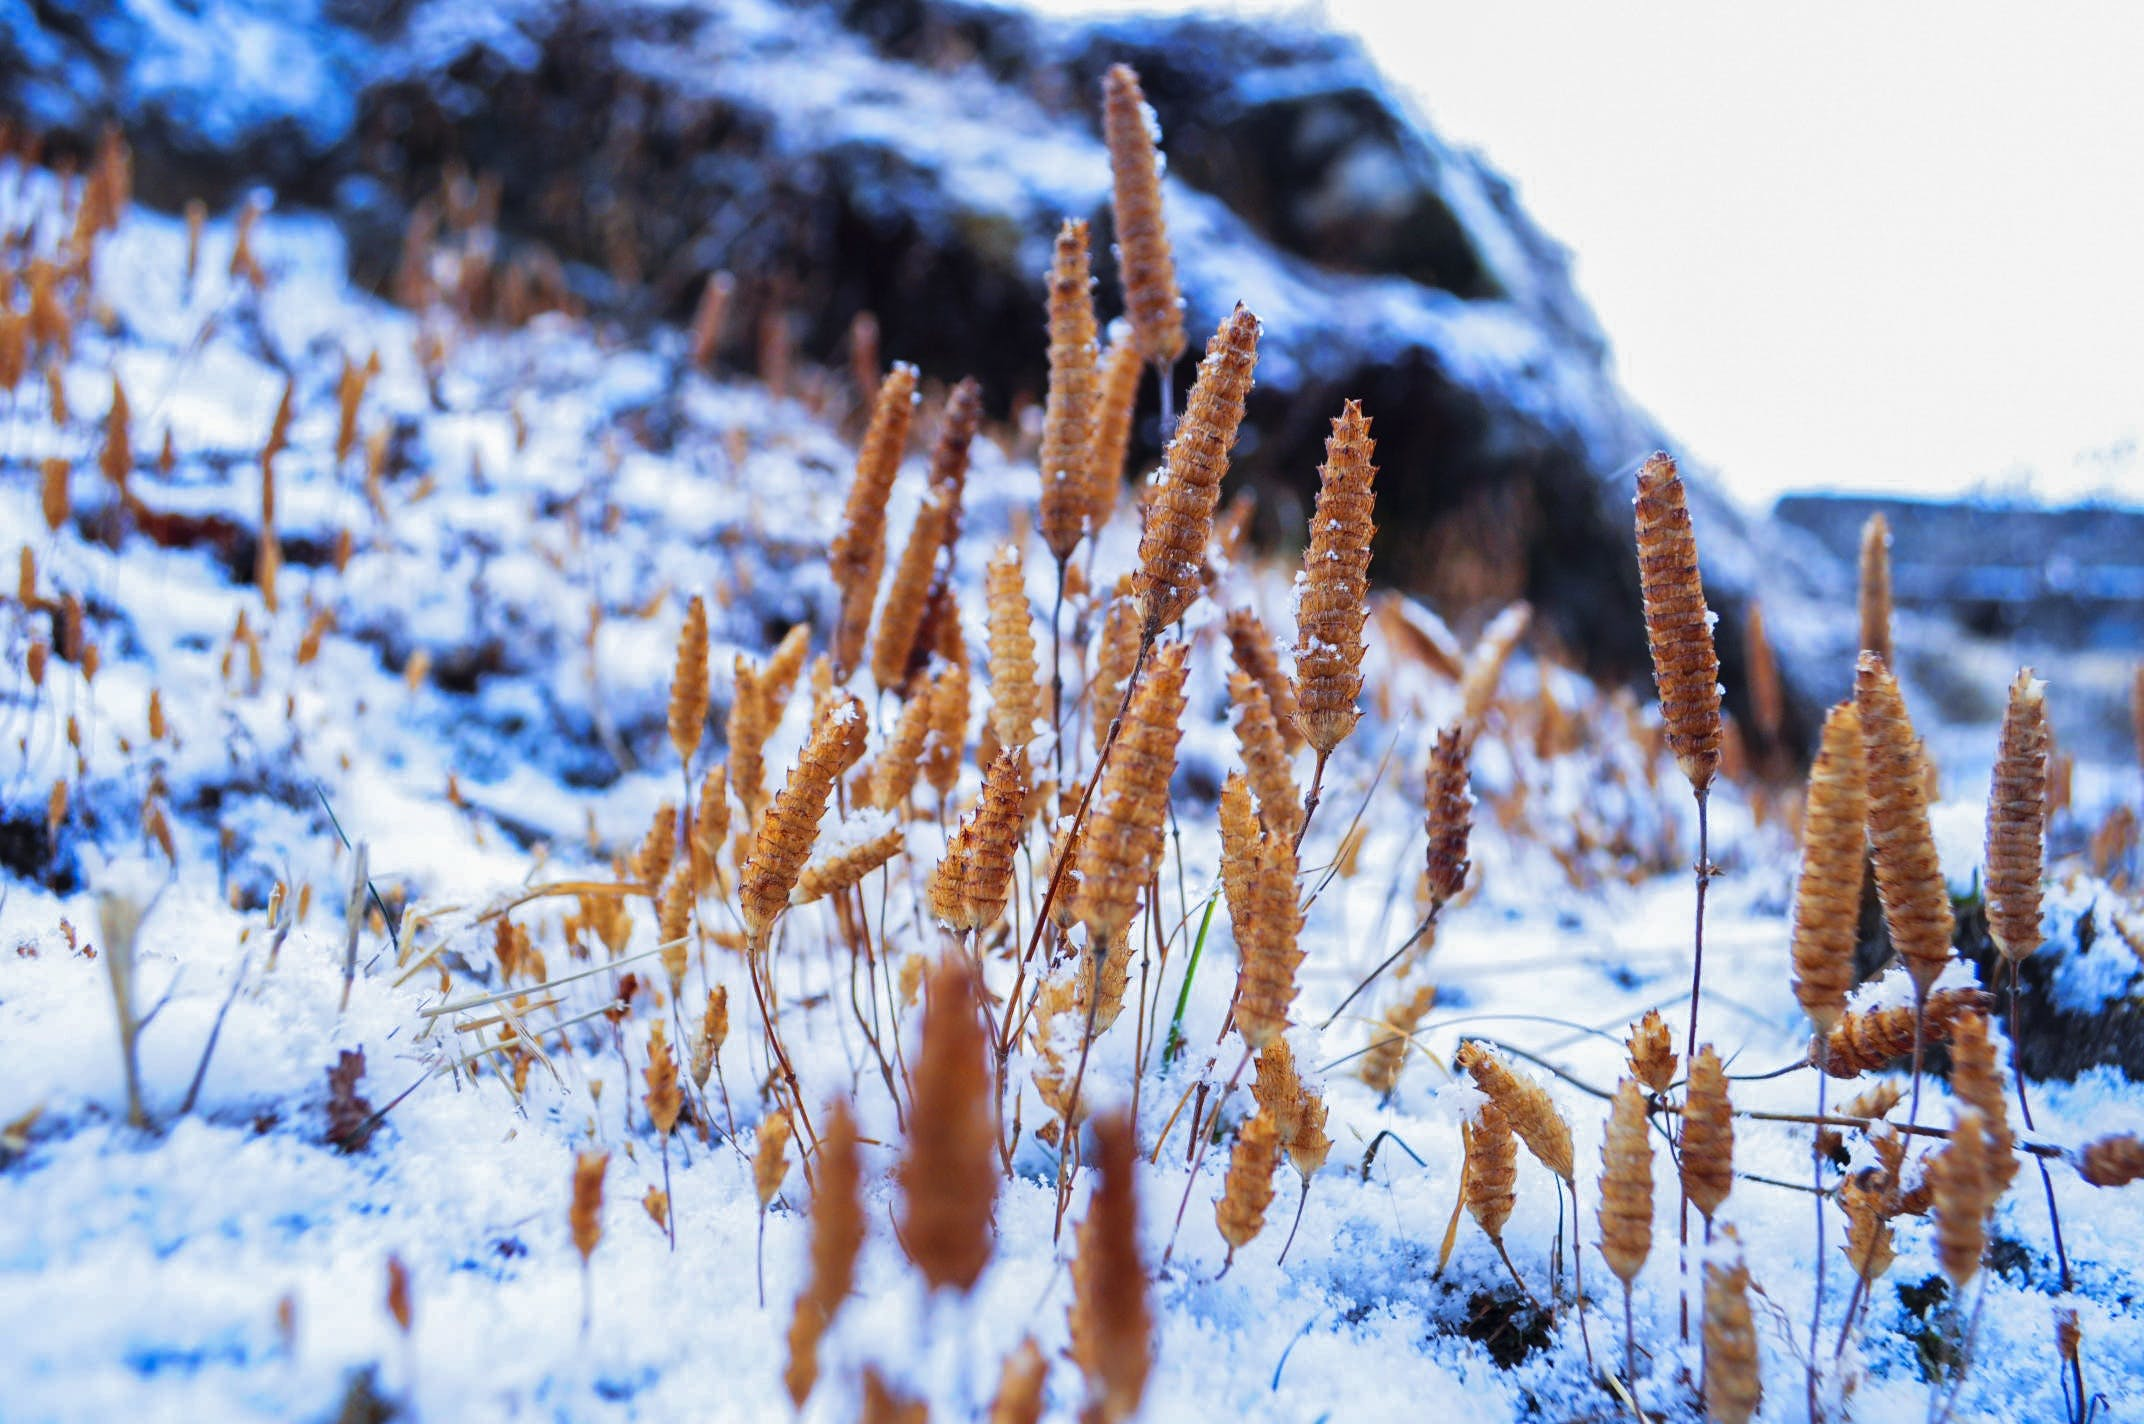 Wheat Plant Cover by Snow